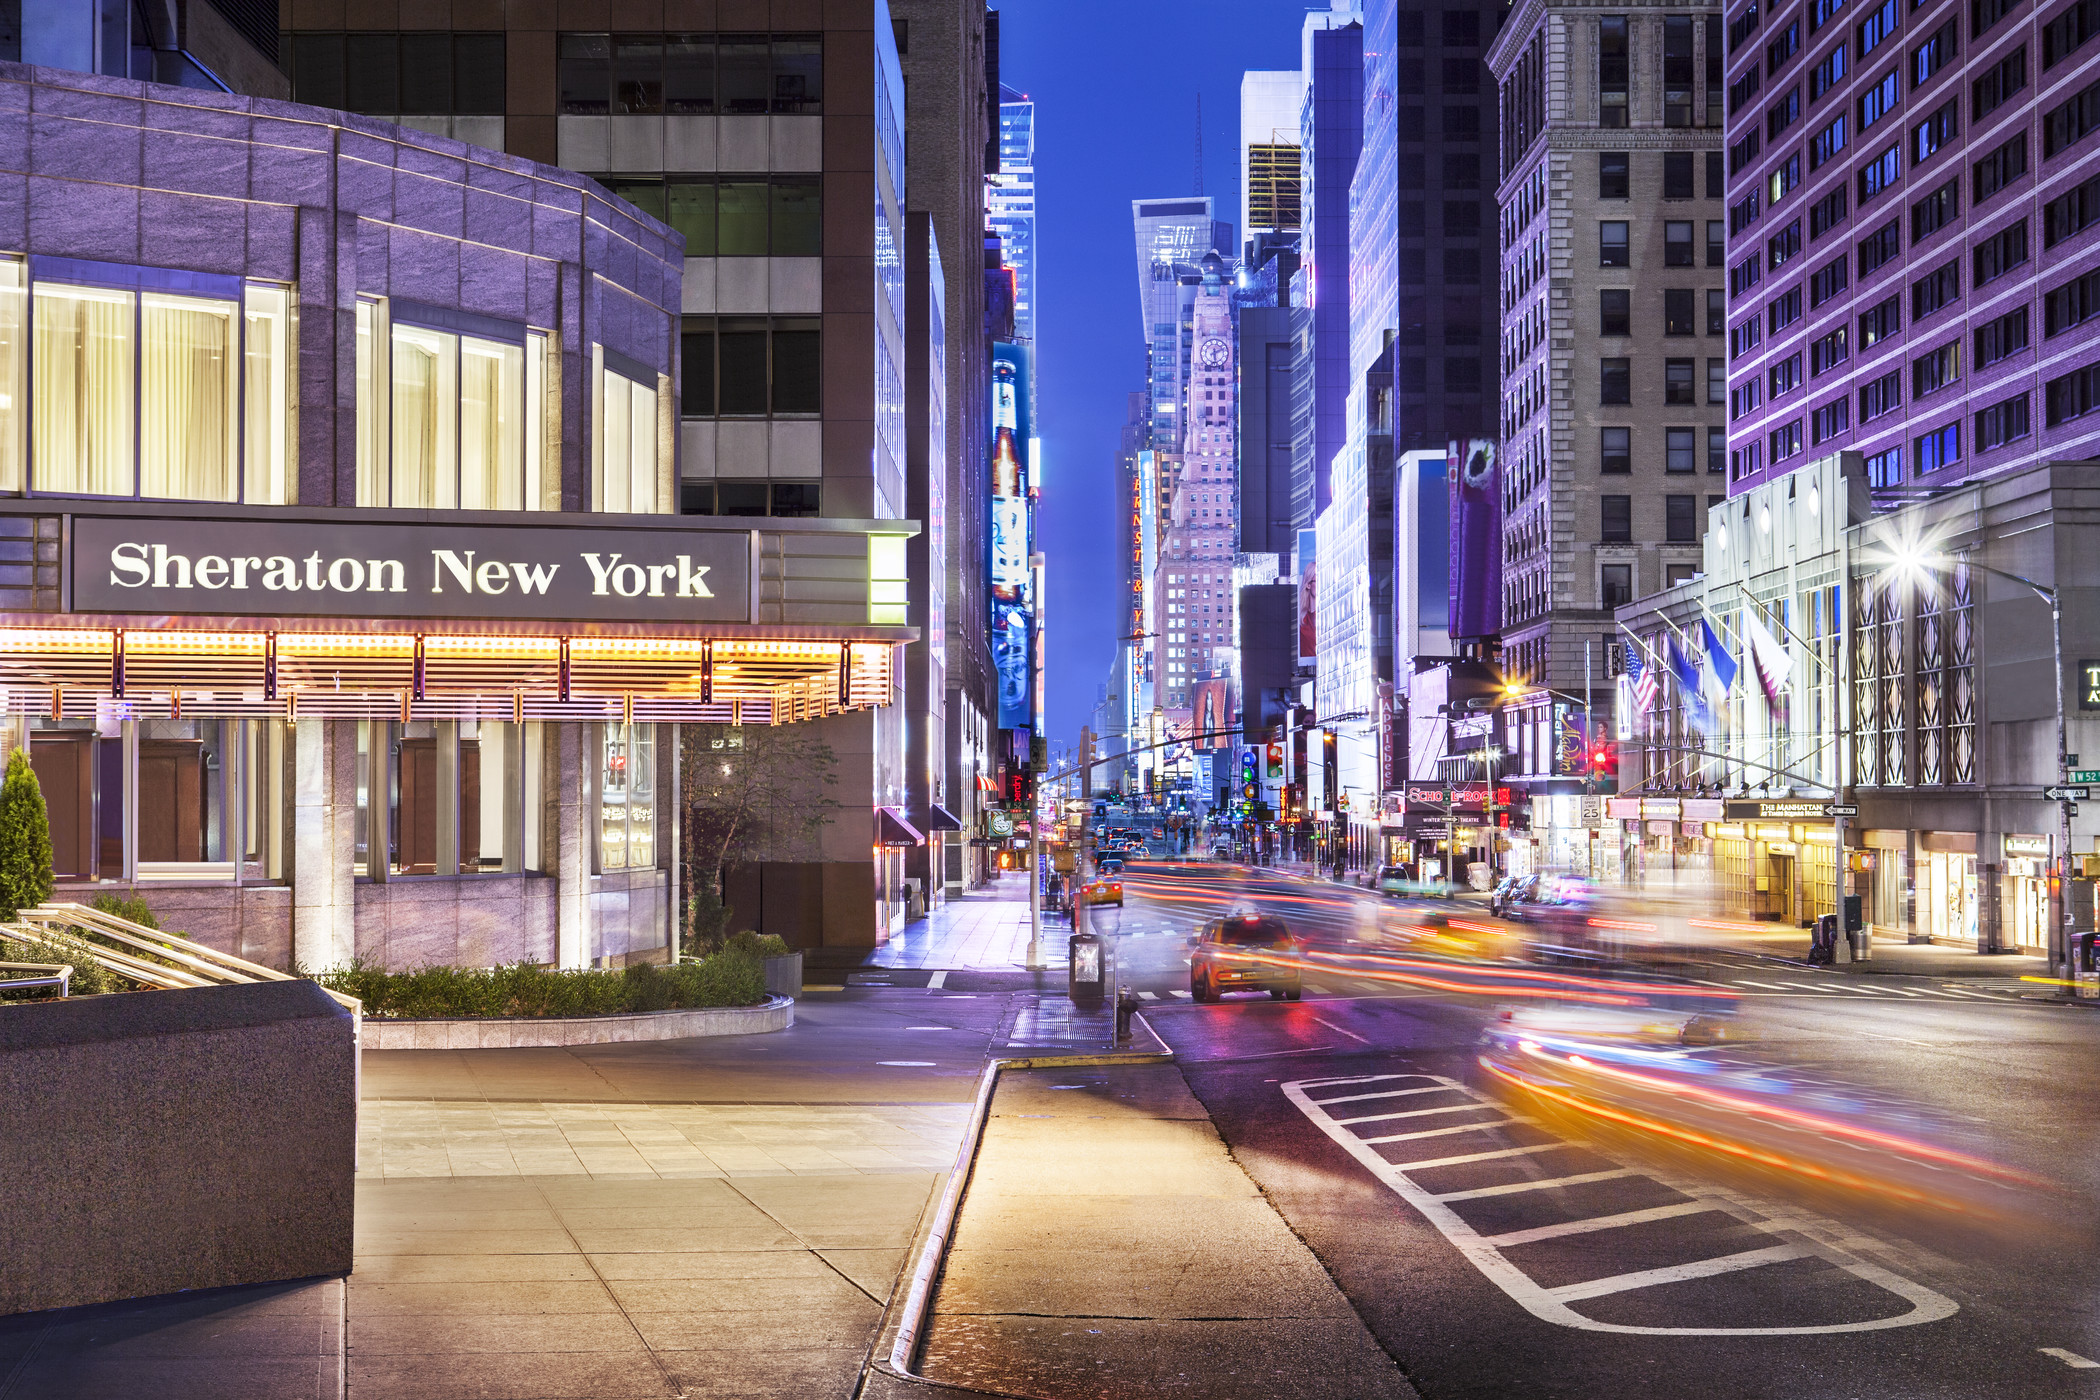 New York Hotel Hotels Price Details